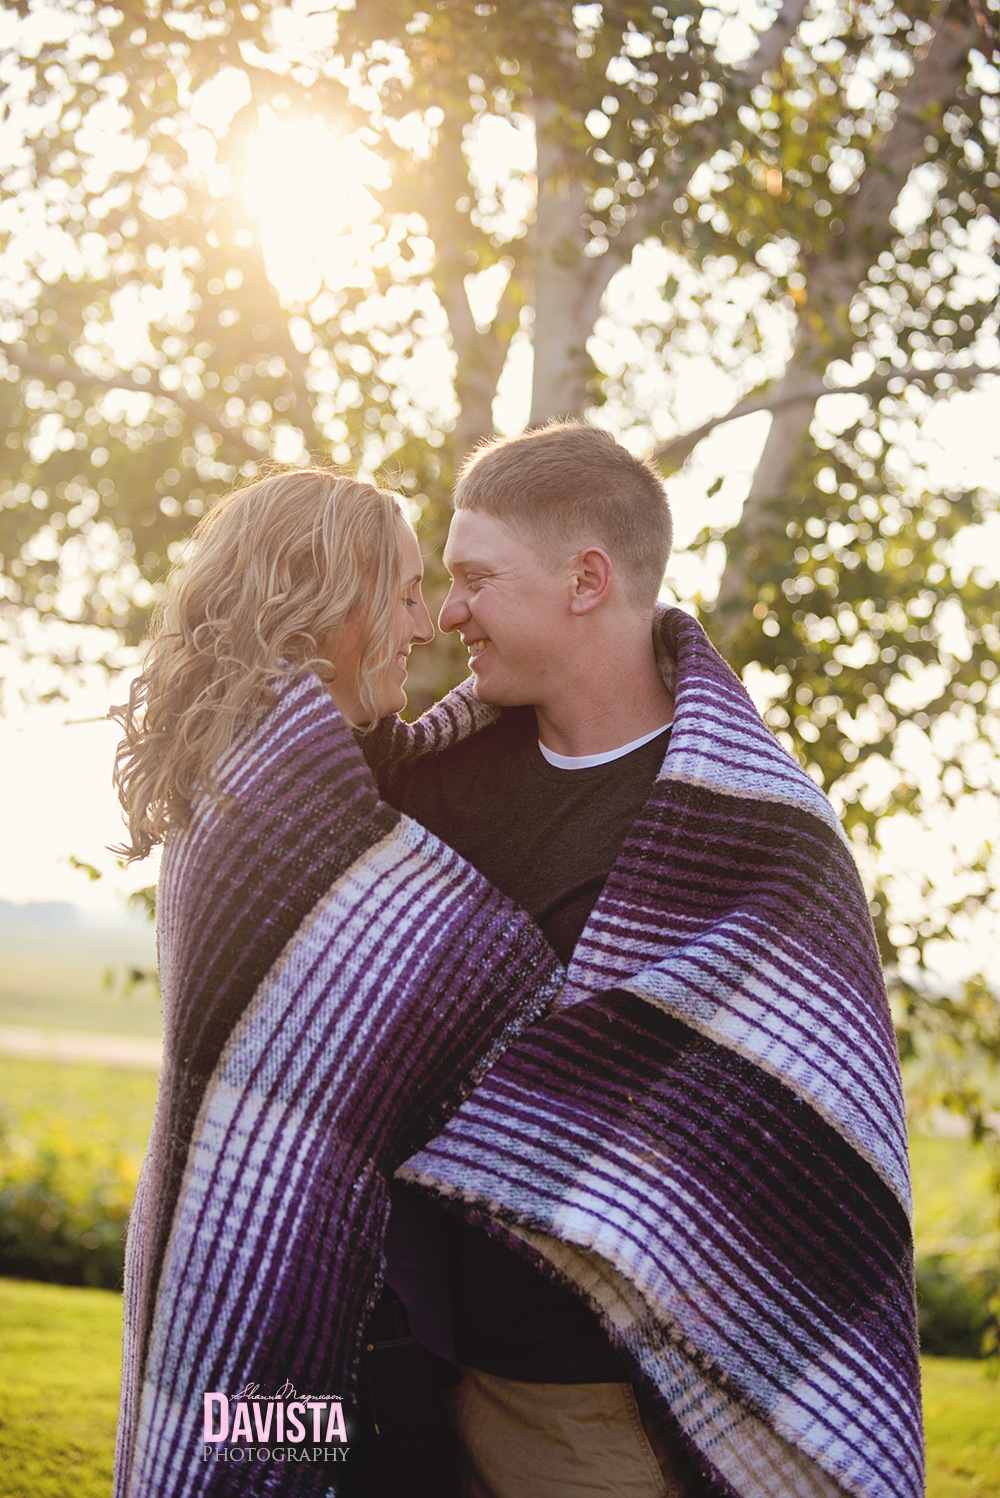 couples poses wrapped up together in blanket